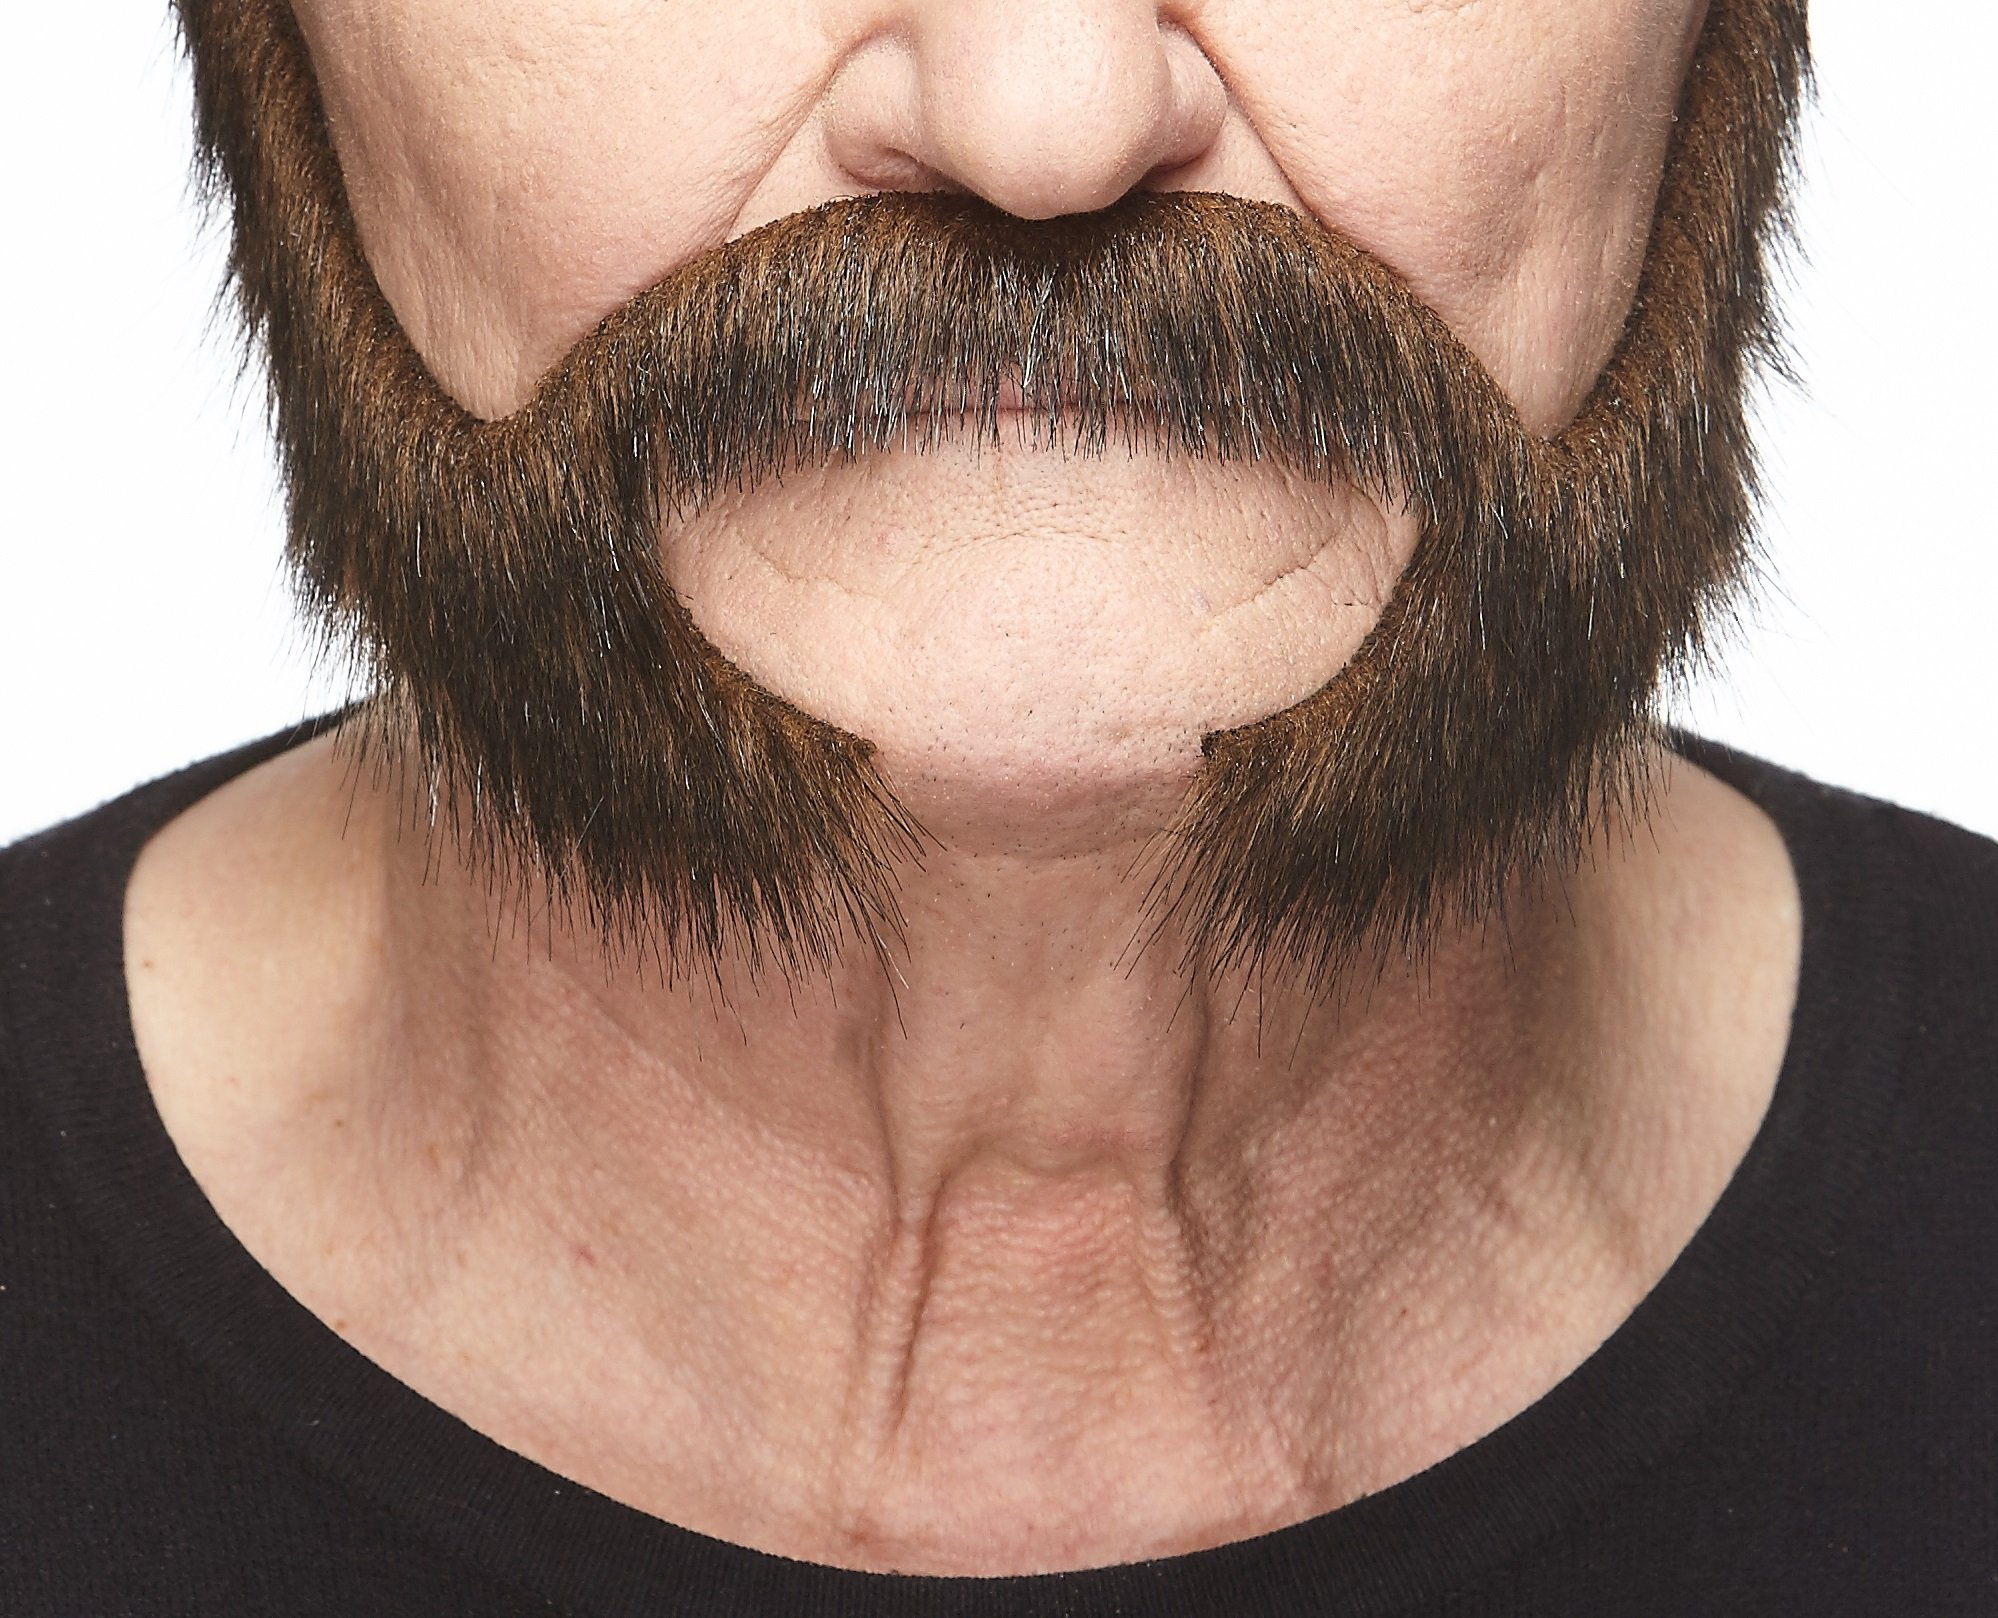 Mustaches Self Adhesive, Novelty, Fake Pedal to the Metal Beard, Brown Color